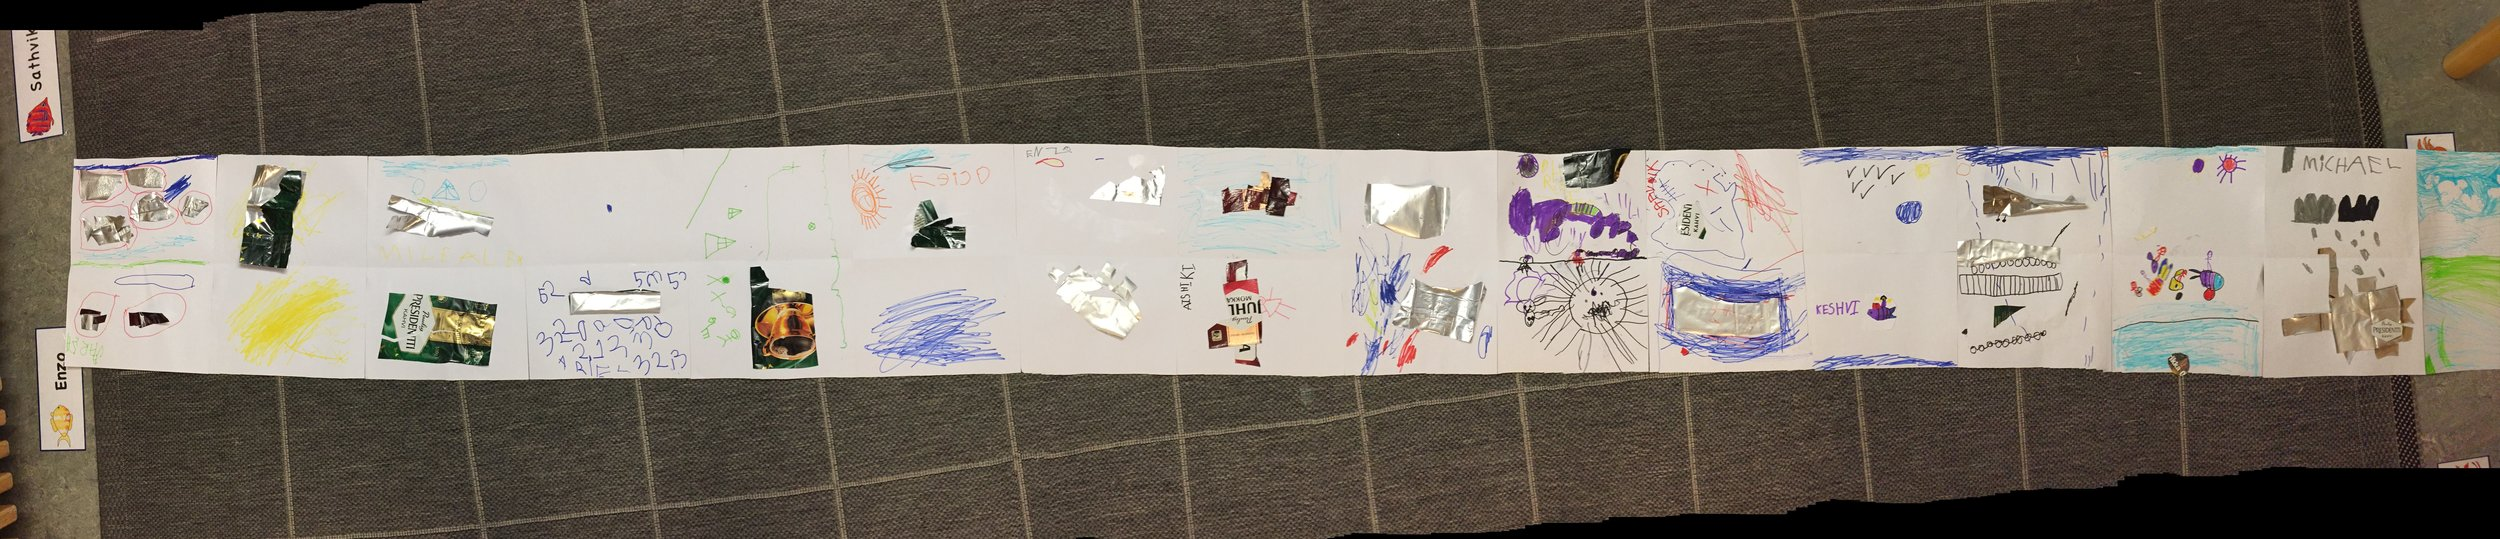 Here's a panoramic view of K1's world!